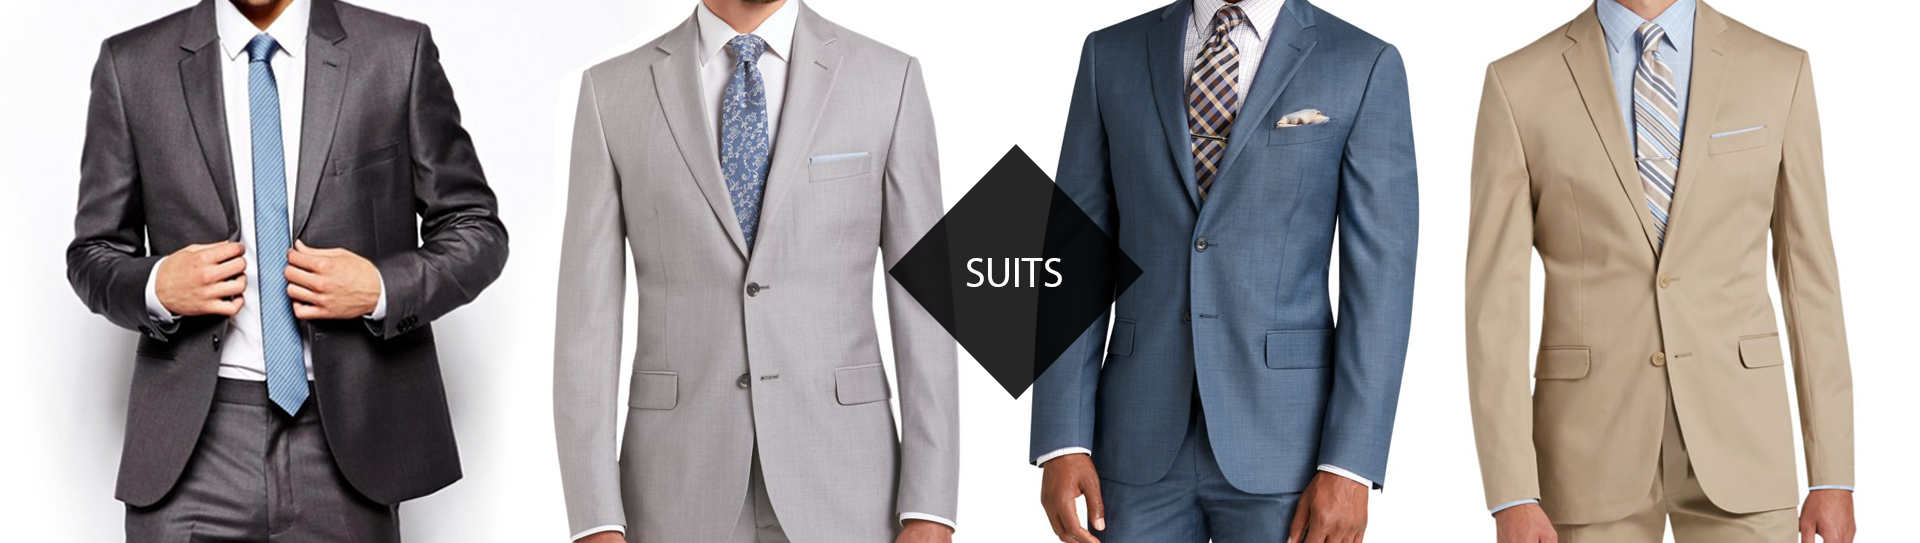 Men's Tuxedo Rentals & Suits | Mr Formal AZ |